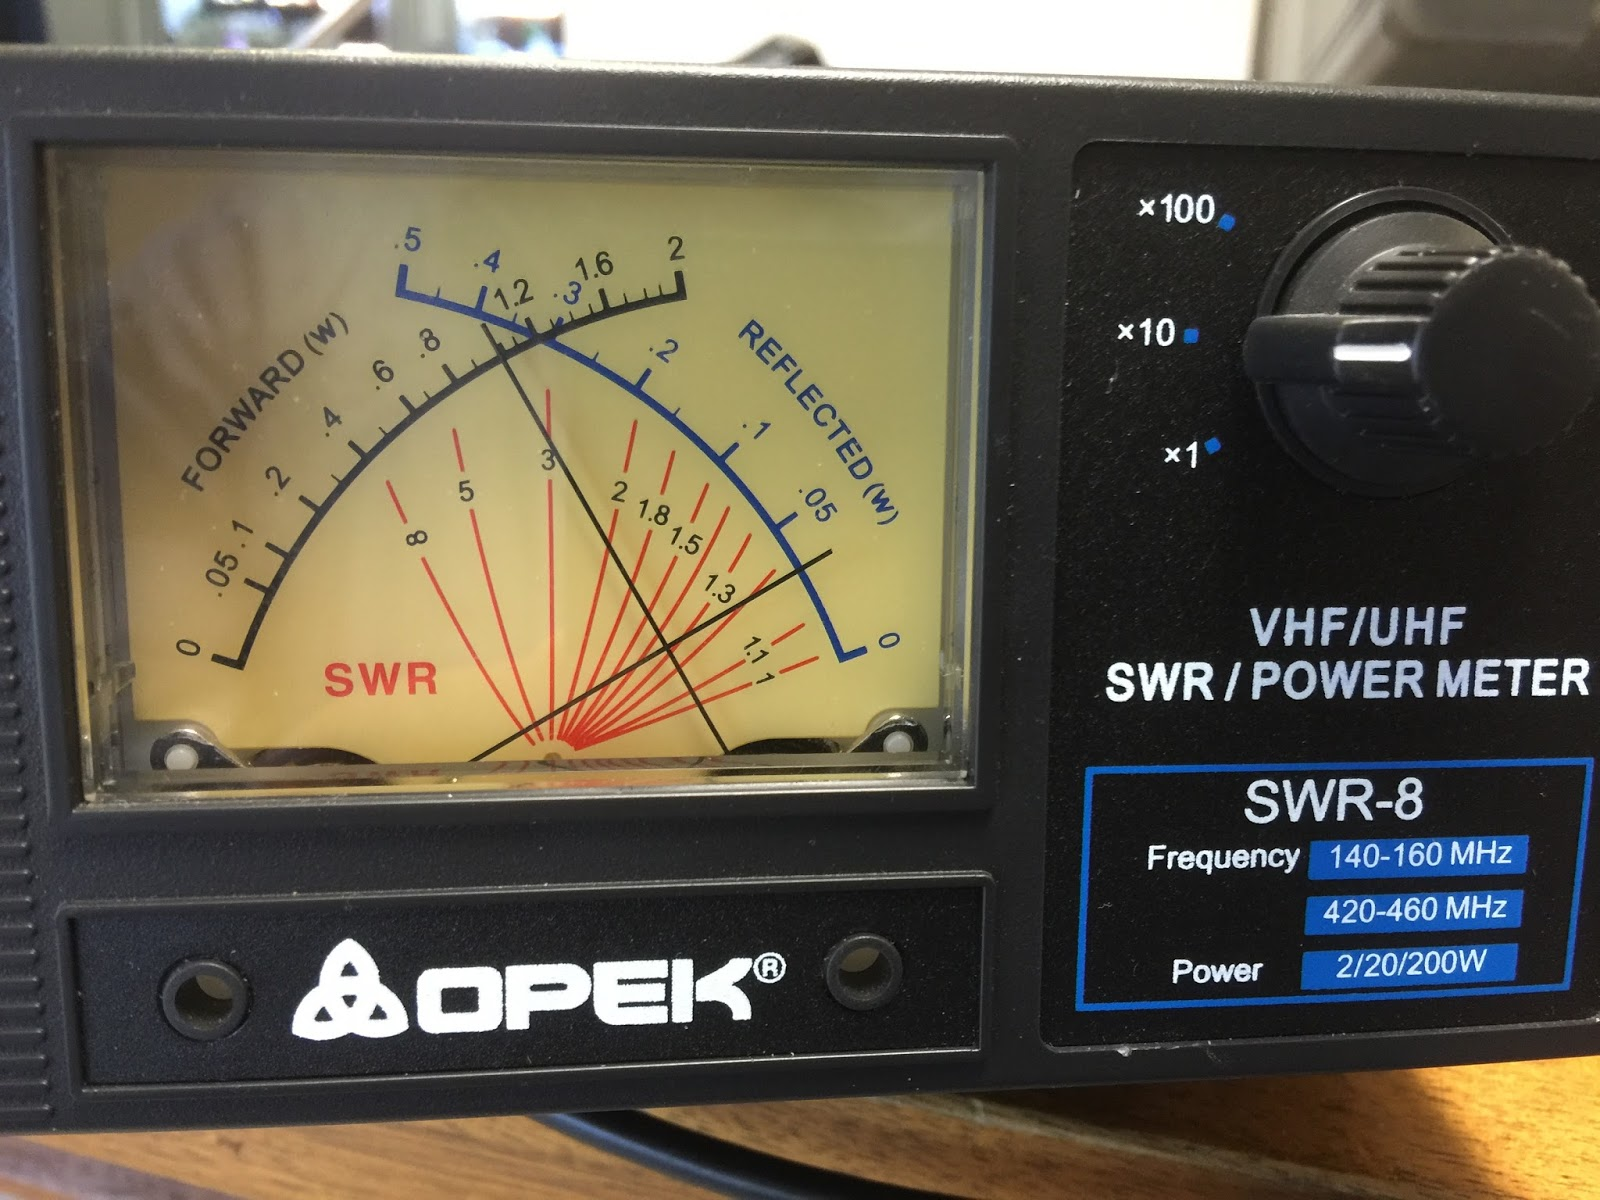 Vk4zxi 2016 Amp Gauge Wiring Diagram Http Wwwebaycom Itm Ac300v100abluelcd For Amusement I Tried The Direct Signal Input Thus Over Driving Amplifier And Putting Out A Few Extra Watts Of Power